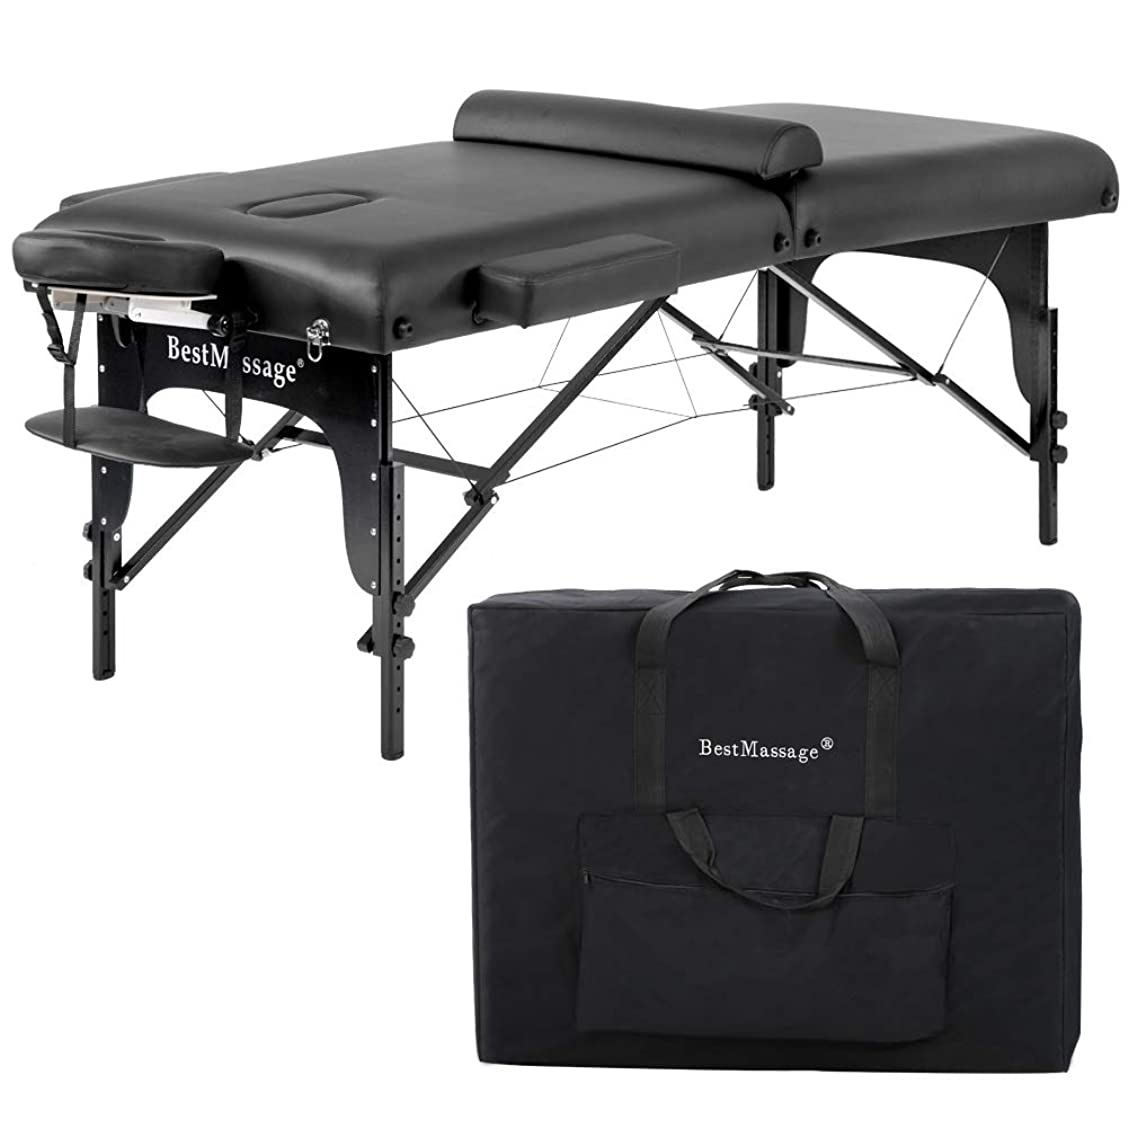 Massage Table Massage Bed Spa Bed 77 Inches Long 30 Inches Wide Heigh Adjustable 2 Fold 3 Inchs Density Sponge PU Portable Massage Table Bed w/Carry Case Facial Cradle Salon Tattoo Bed